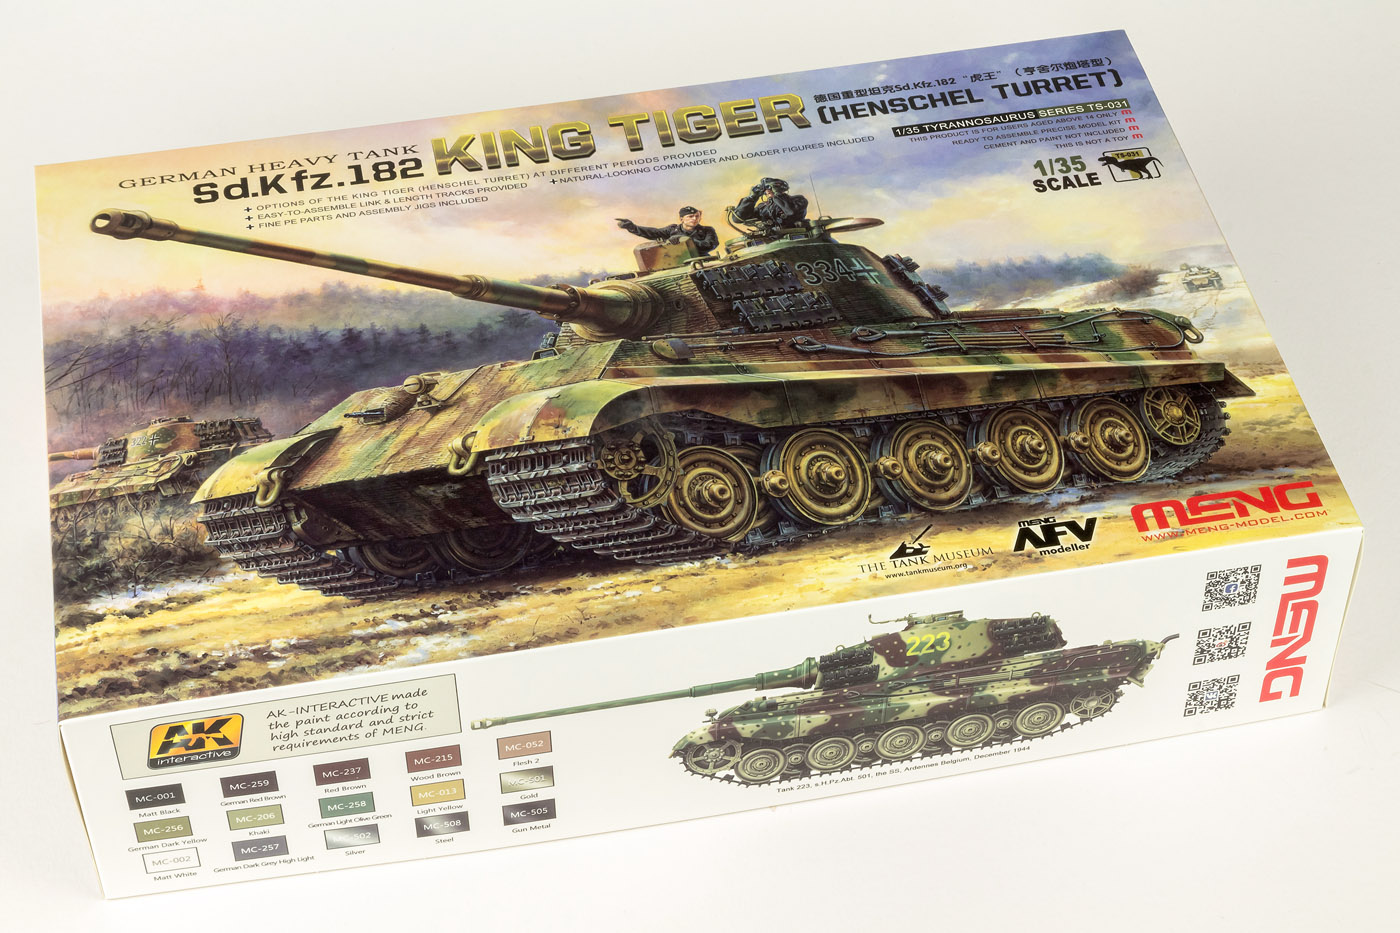 The Modelling News In Box Review Meng Models 35th Scale Sd Kfz 182